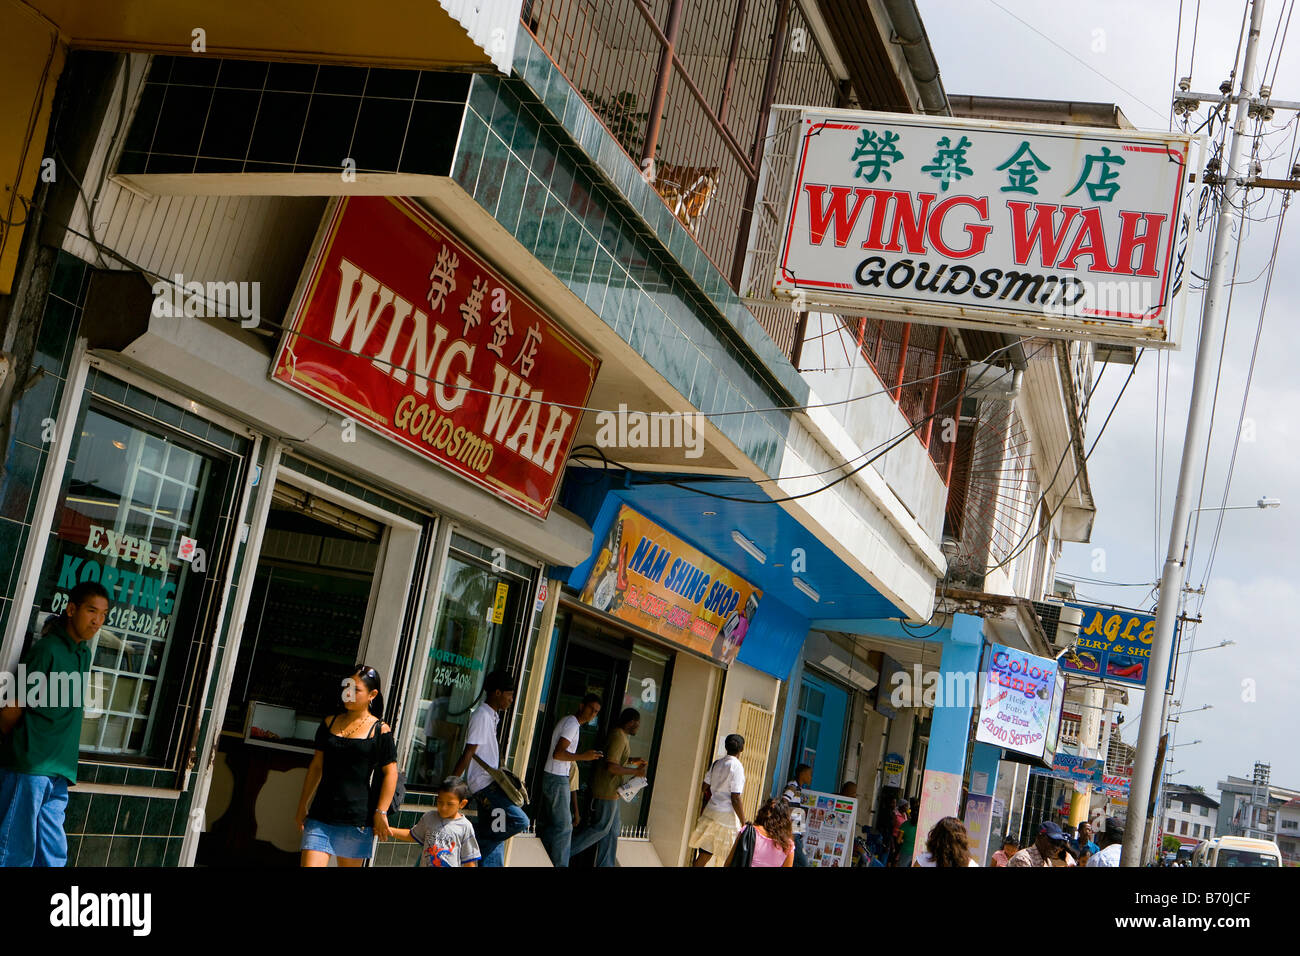 Suriname, Paramaribo. Chinese jewelry shops. - Stock Image